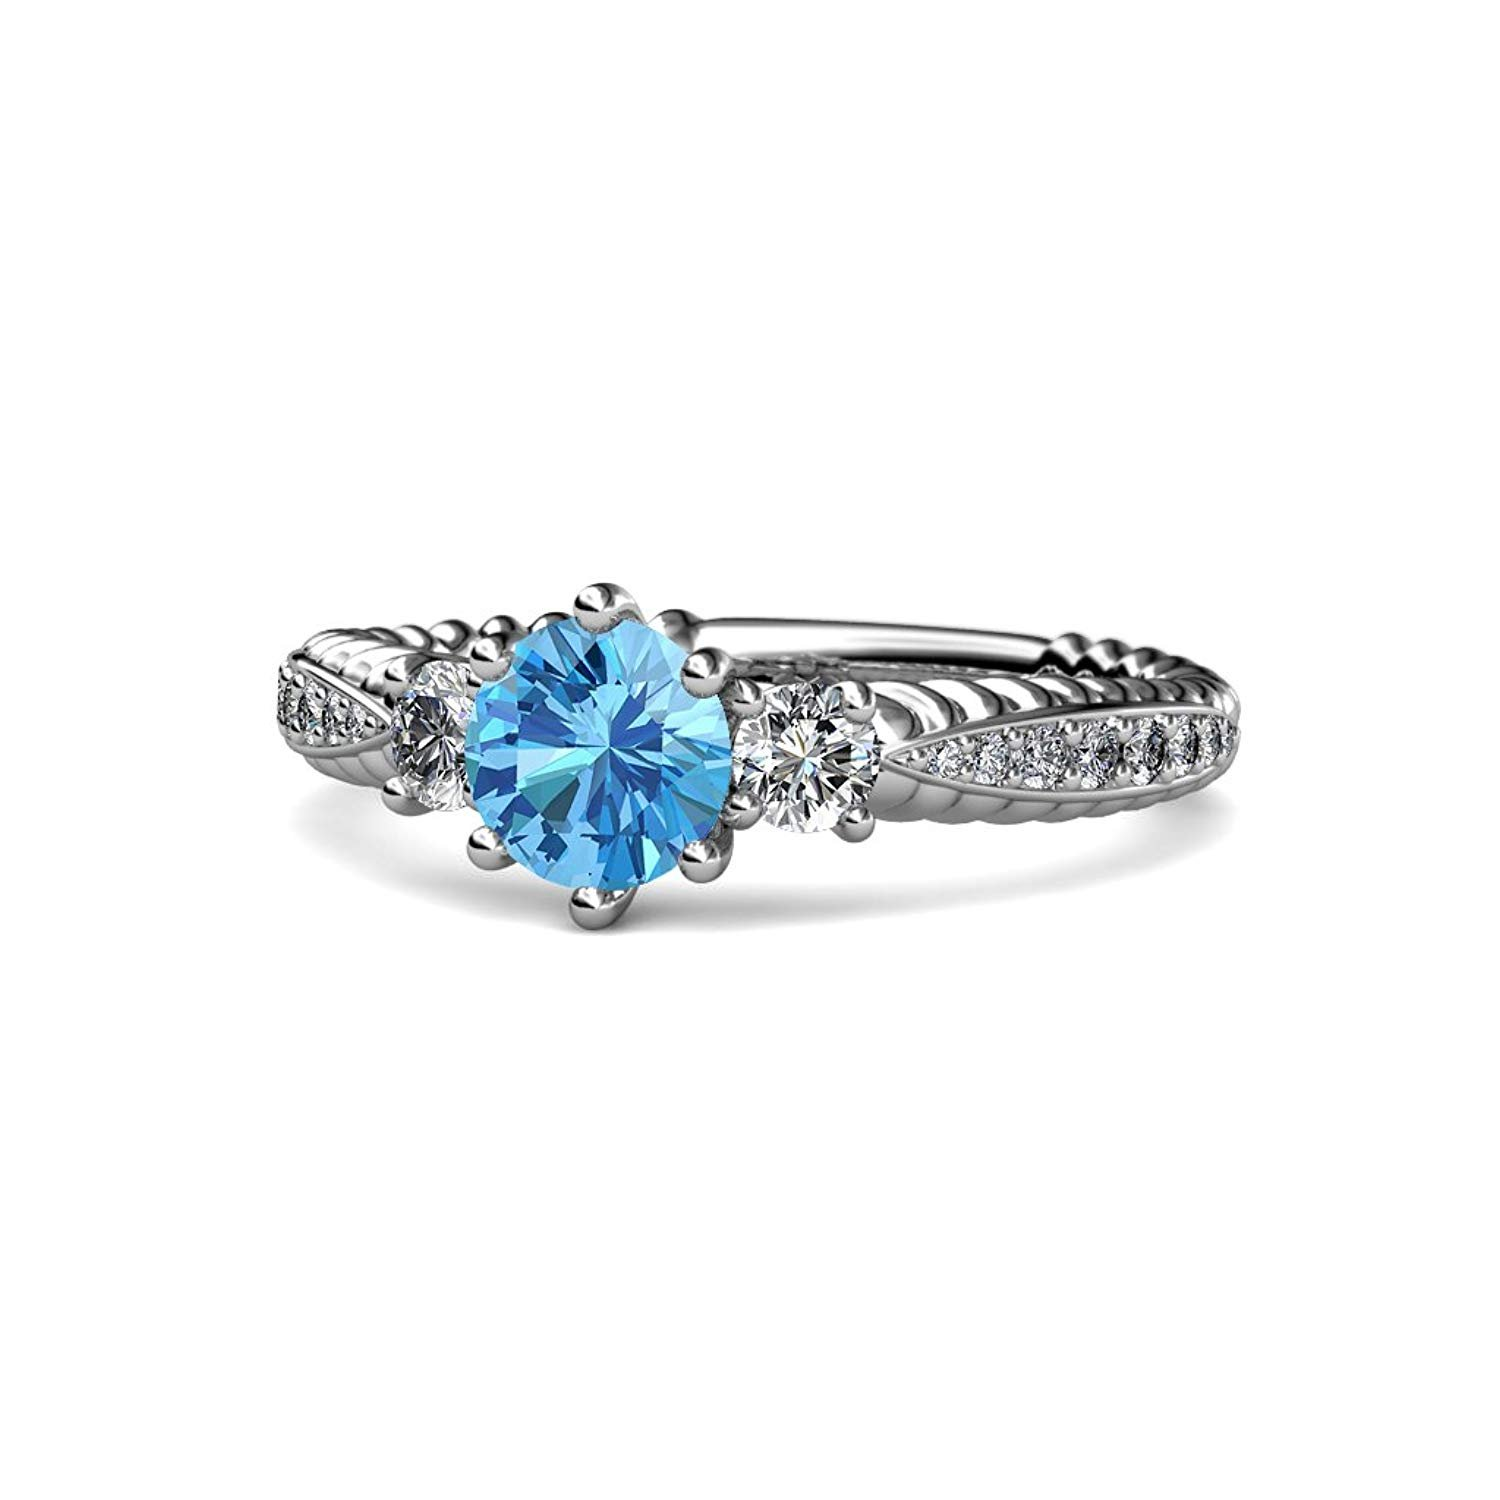 Blue Topaz and Diamond Three Stone Ring with Diamond on Side Bar 1.55 cttw 14K White Gold.size 5.5 by TriJewels